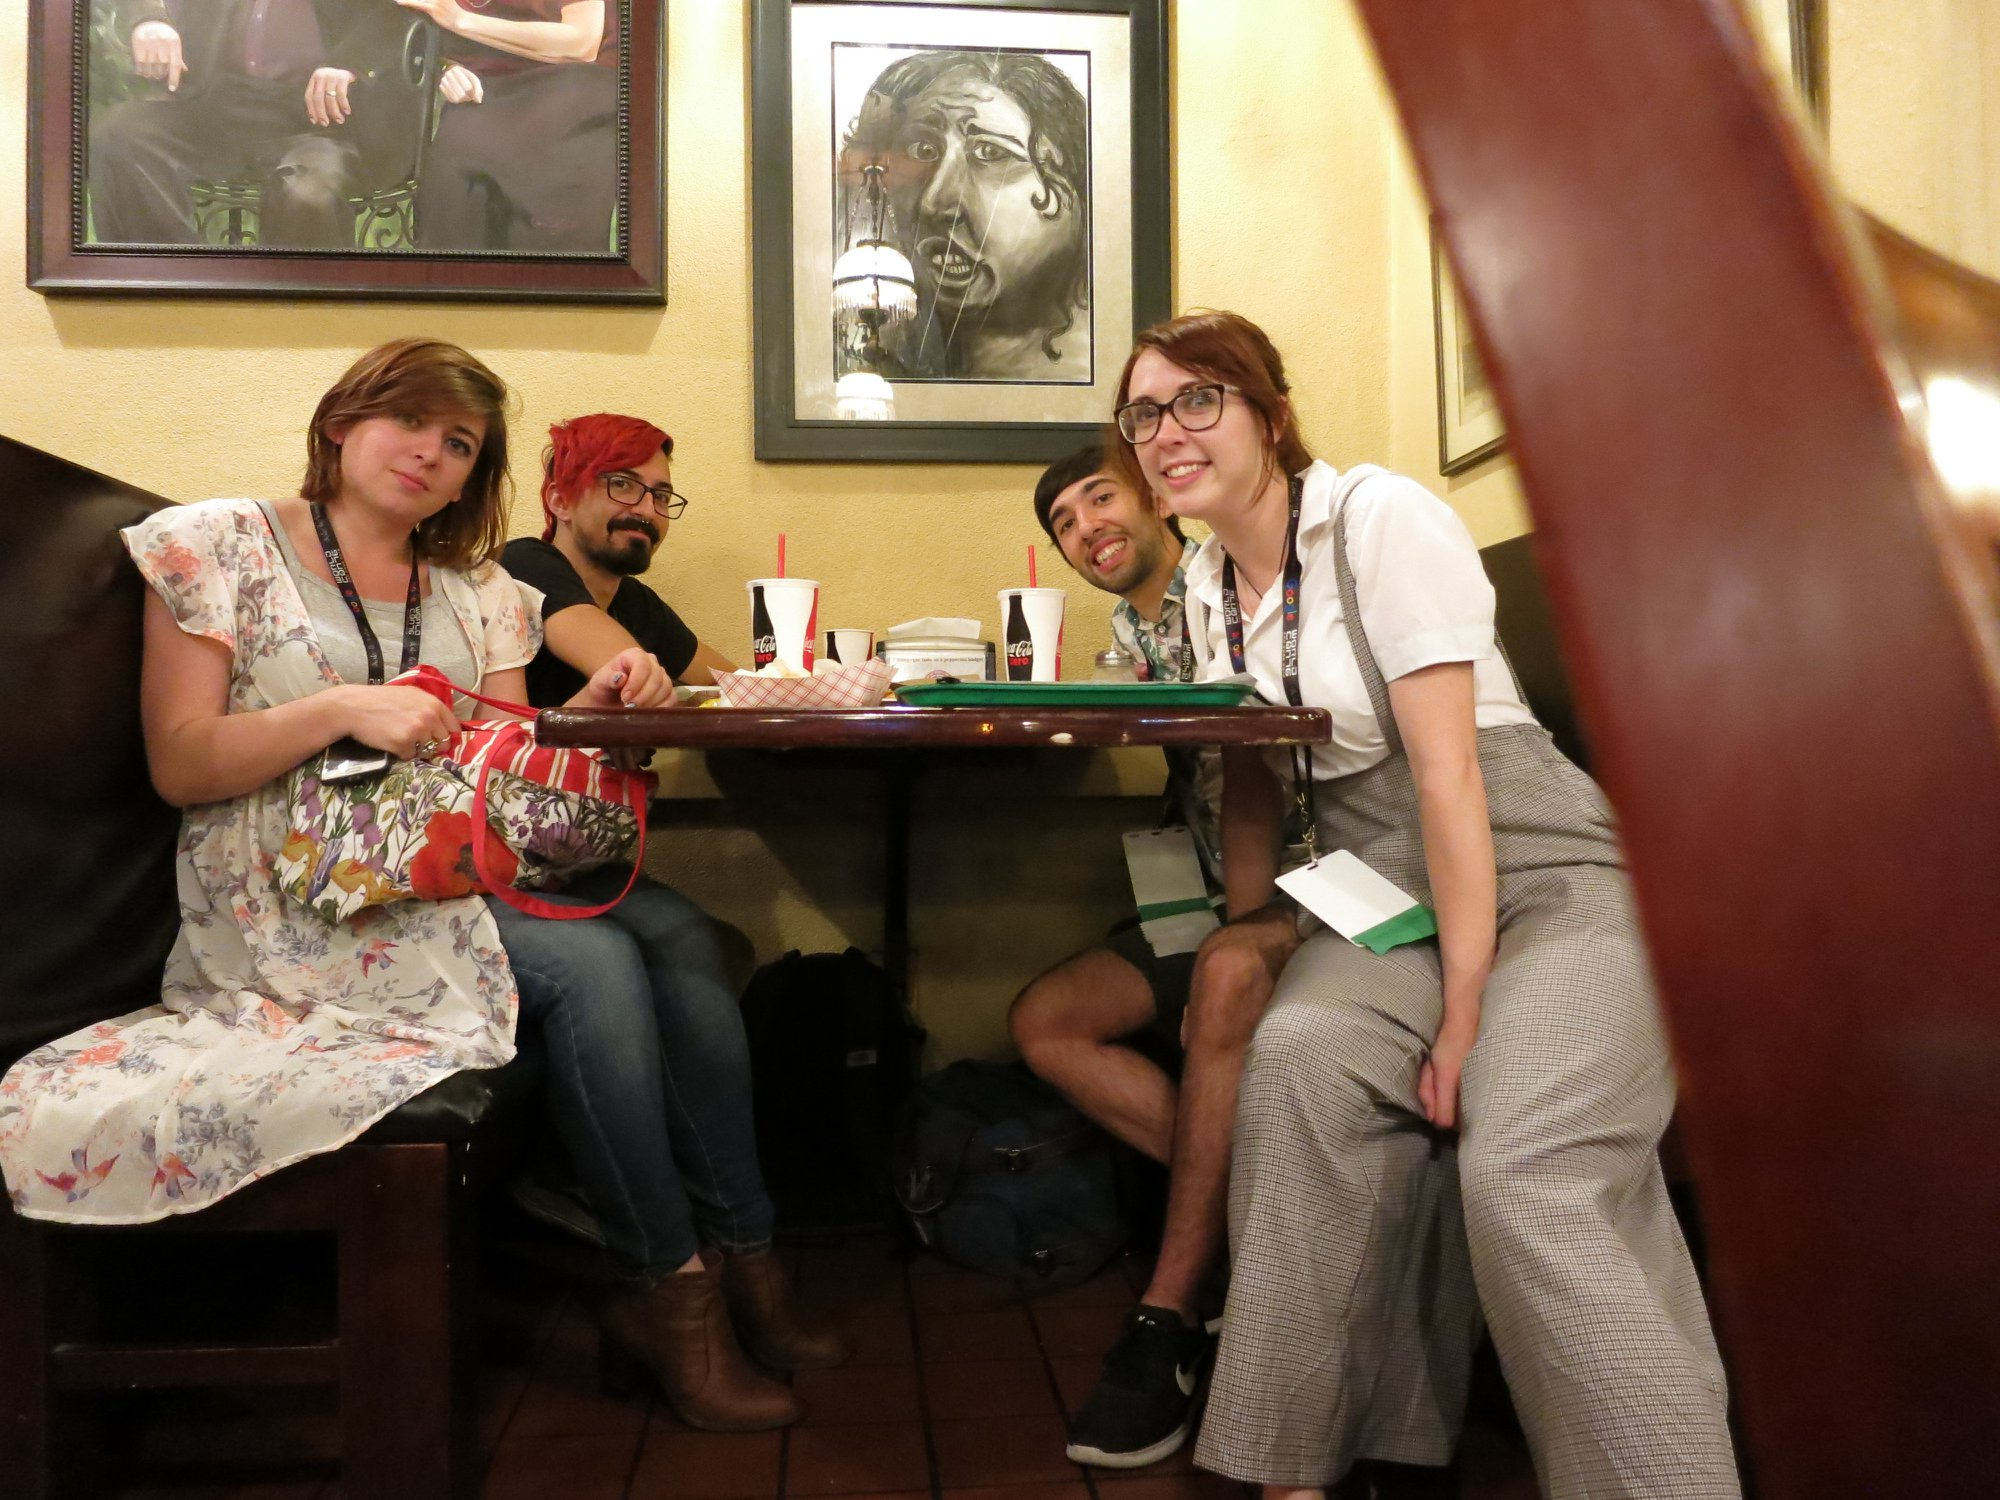 Mariana Palova, Cody Jimenez, Gonzalo Alvarez, and Grace Chadwick bonding over food at Worldcon 76